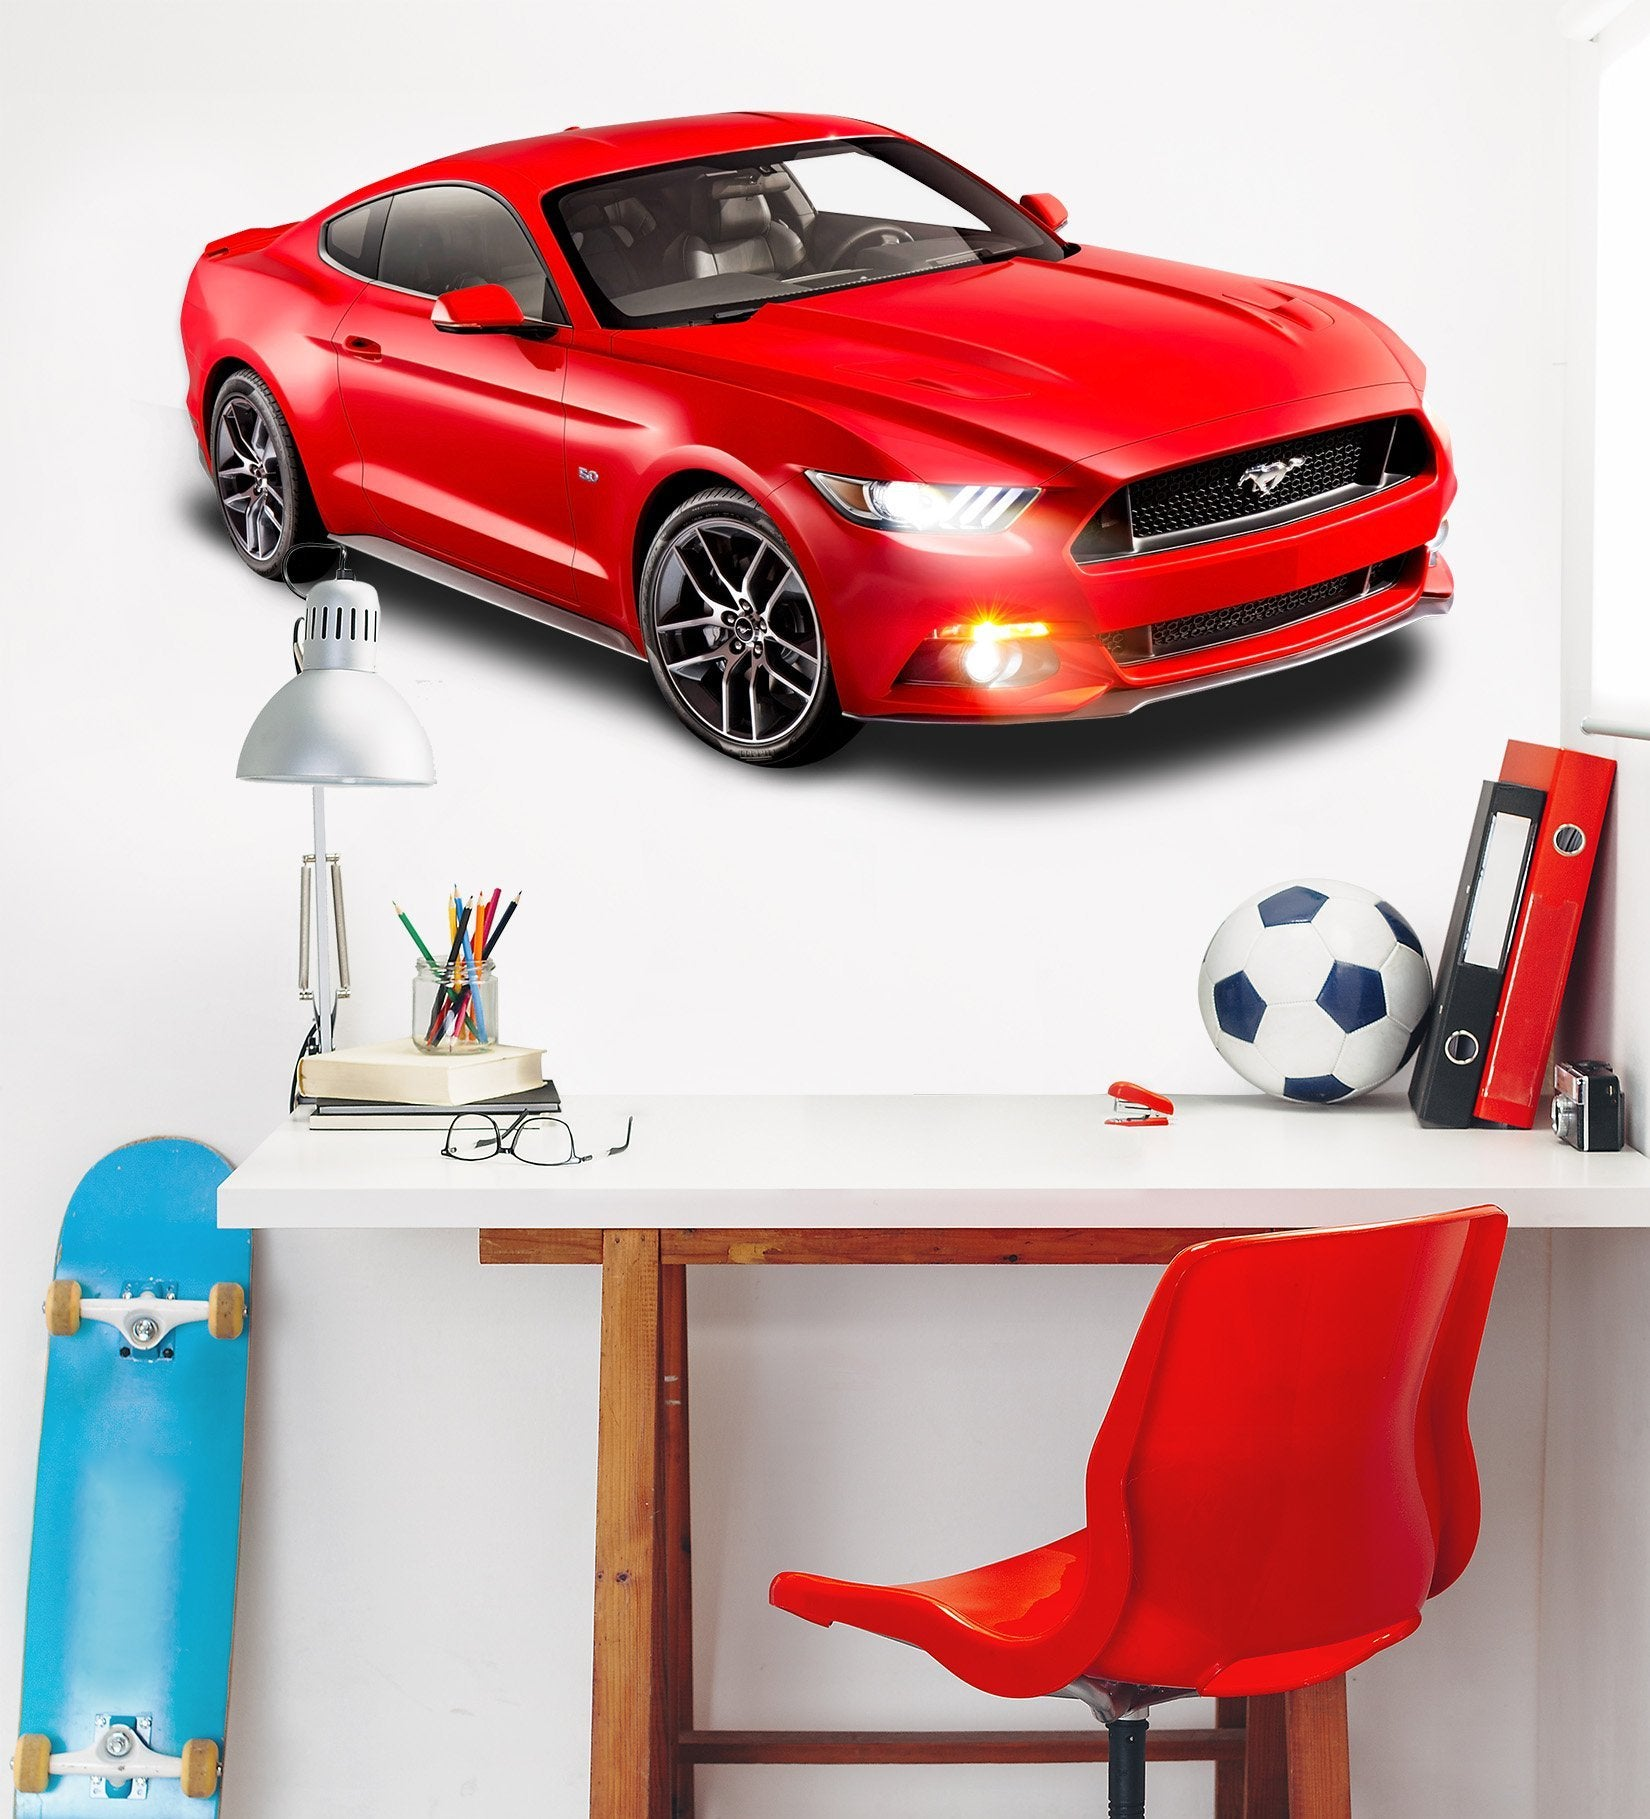 3D Ford Mustang 0285 Vehicles Wallpaper AJ Wallpaper